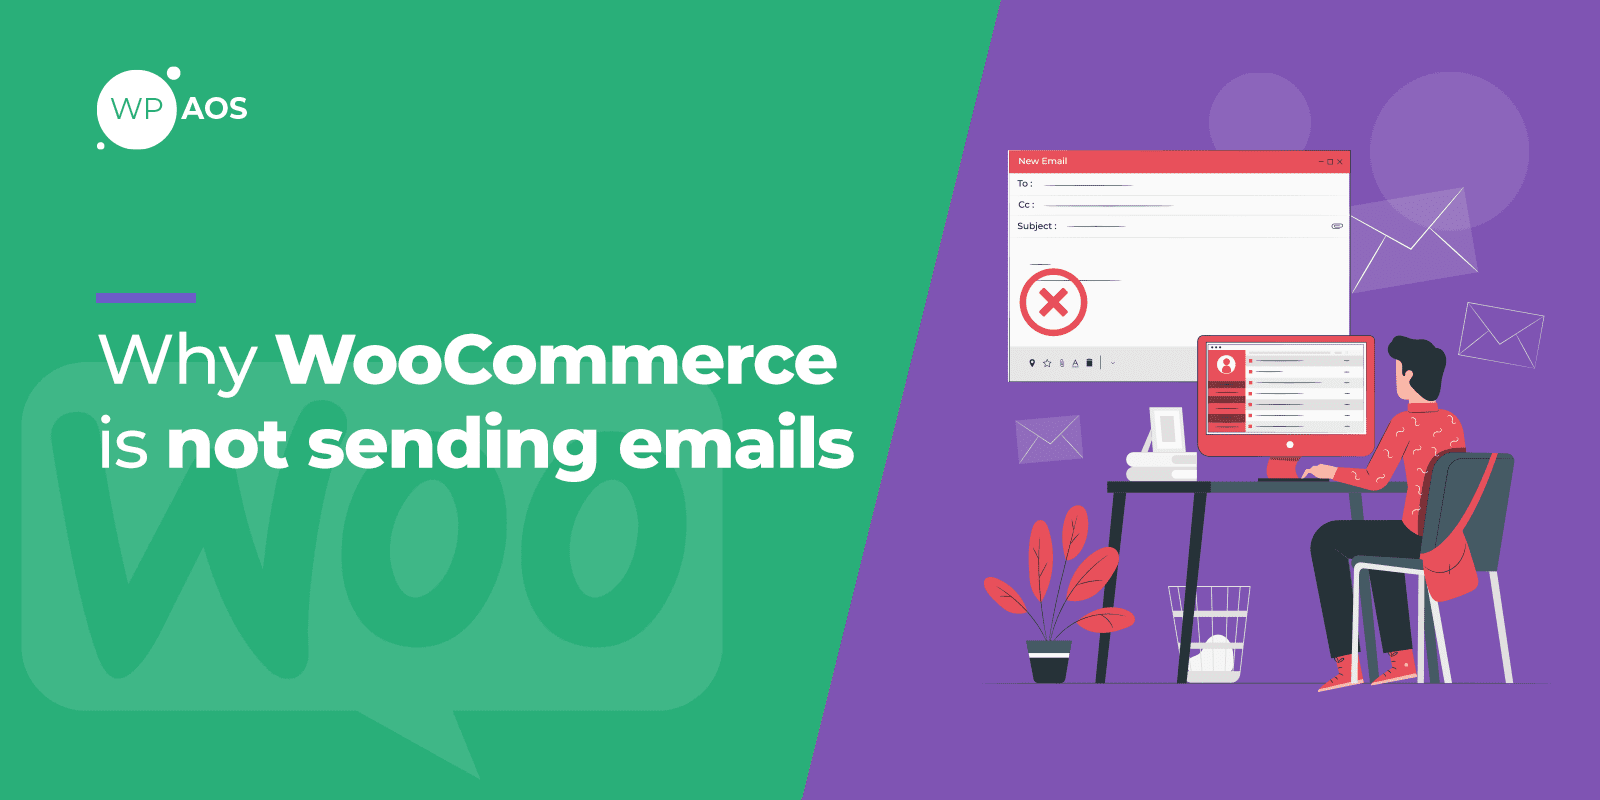 woocommerce-not-sending-emails